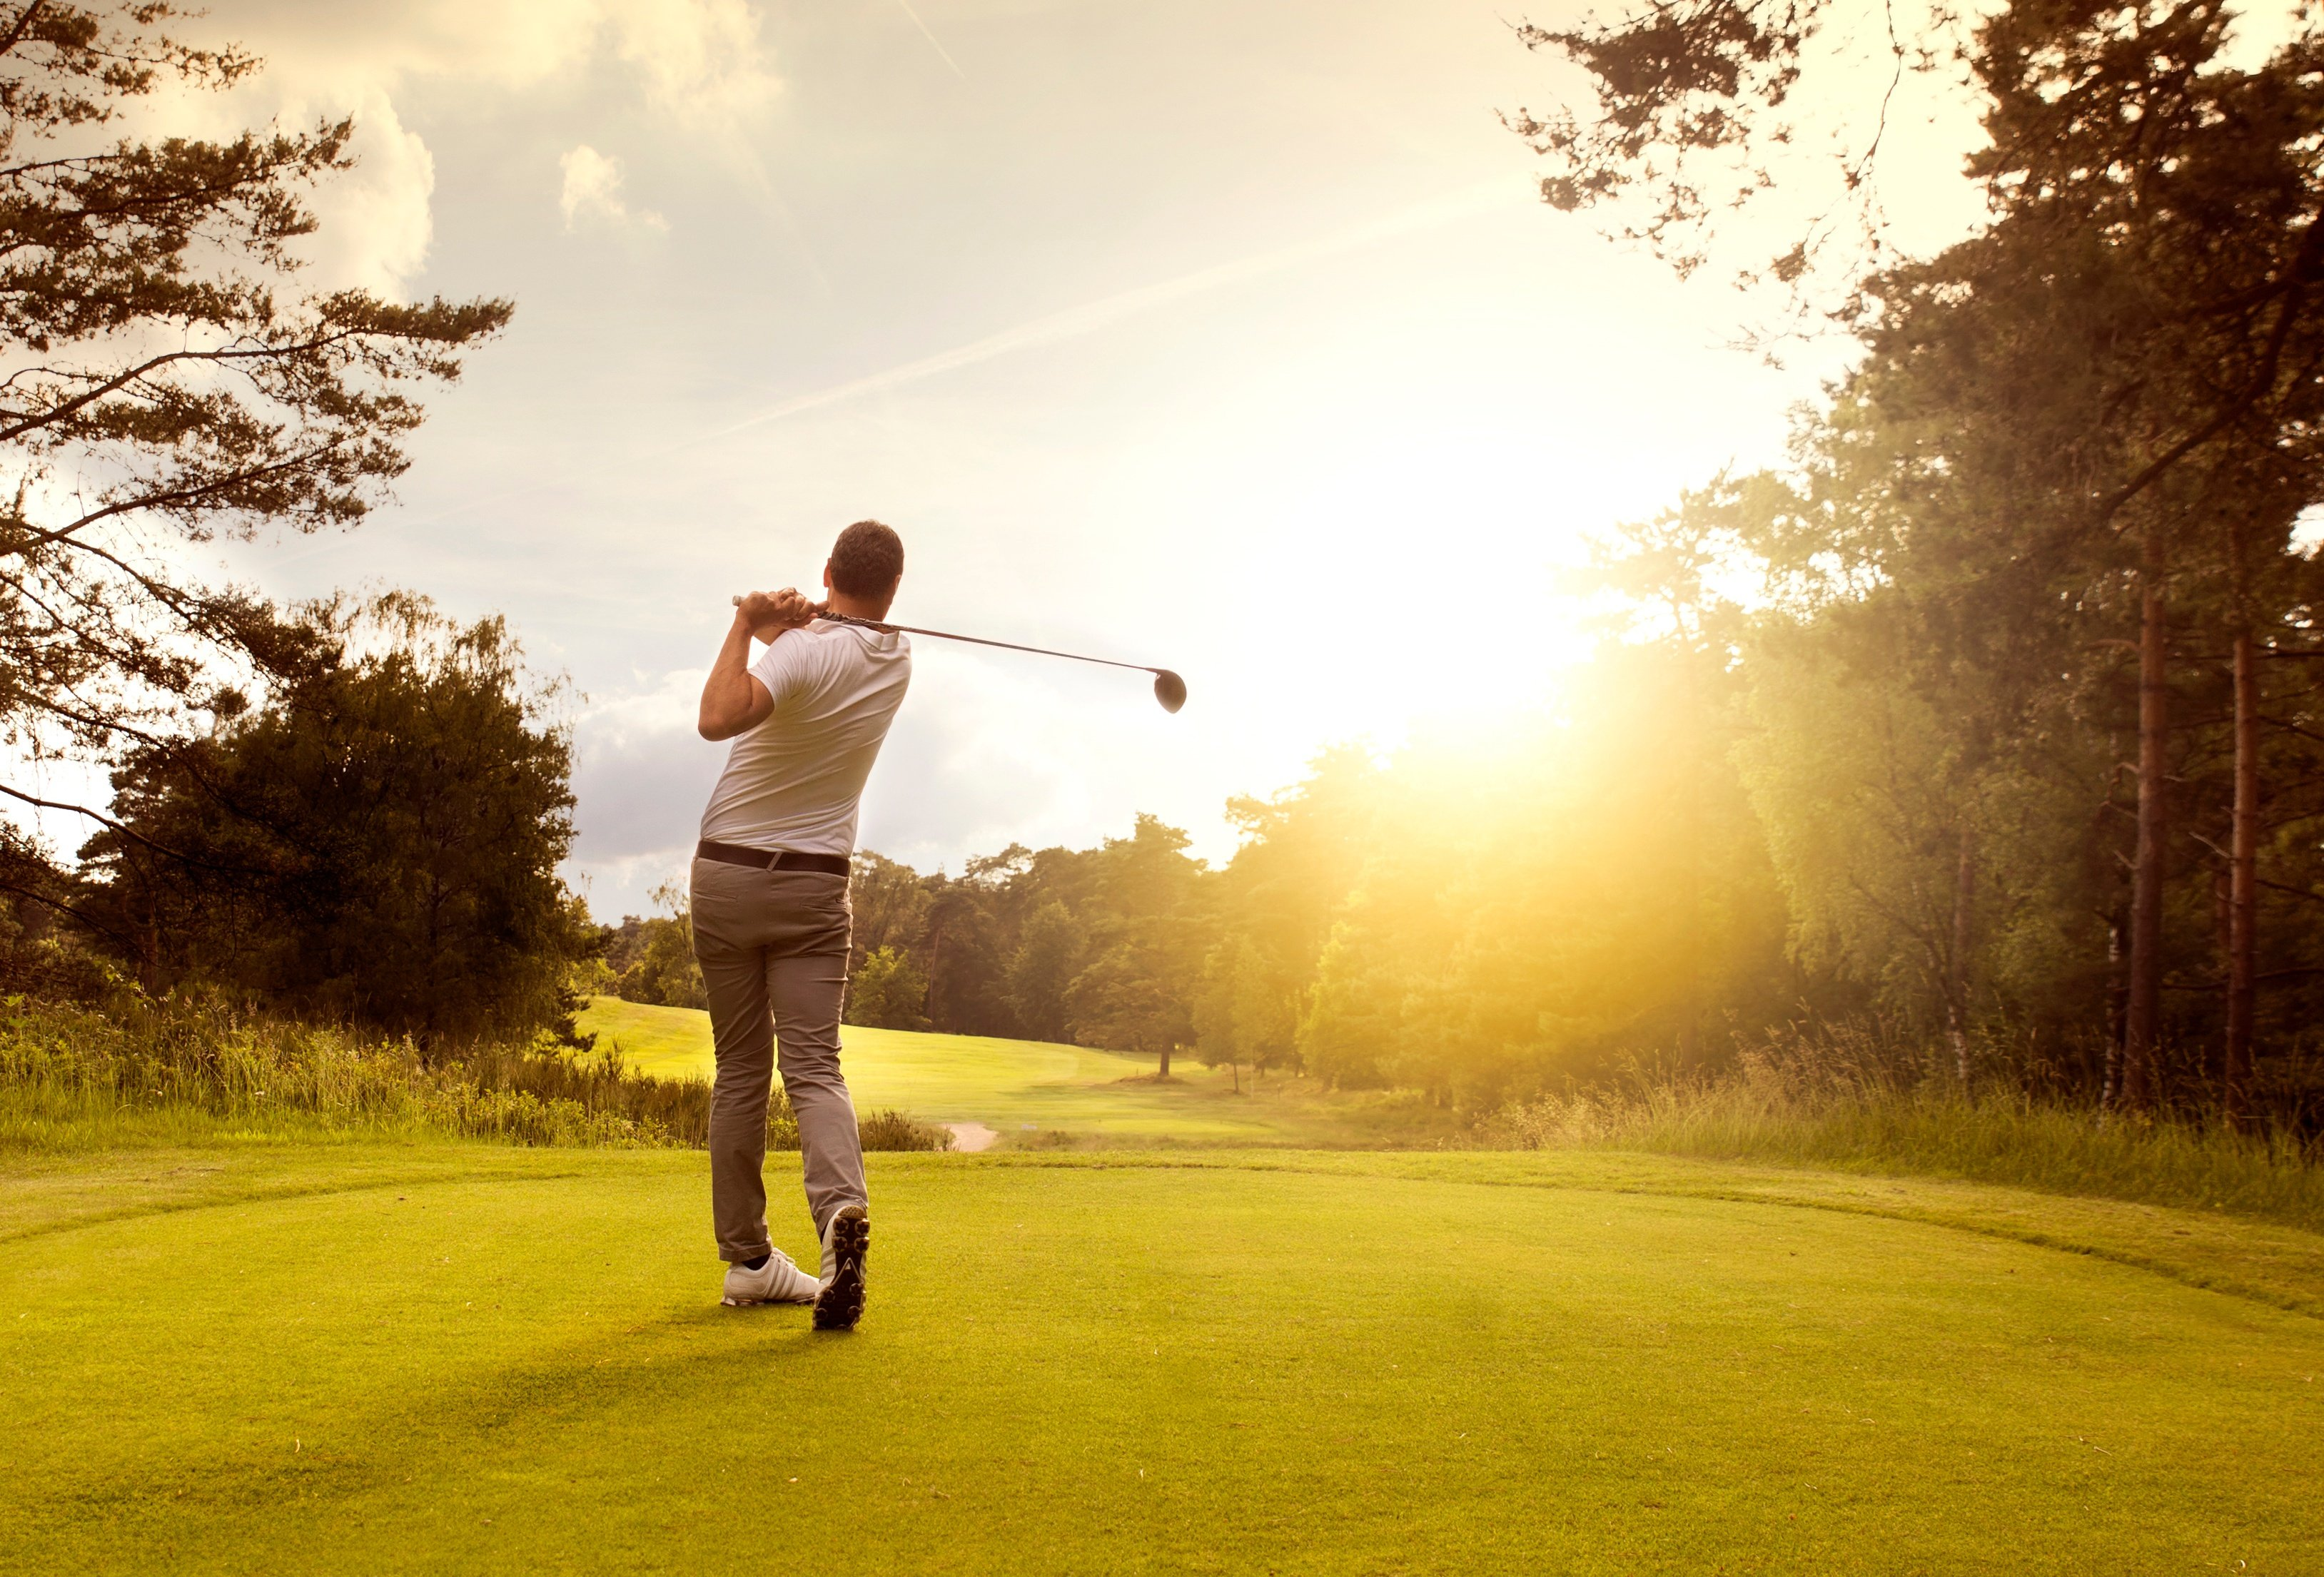 As most golfers know, mosquitoes are just another hazard to deal with when out on the golf course.